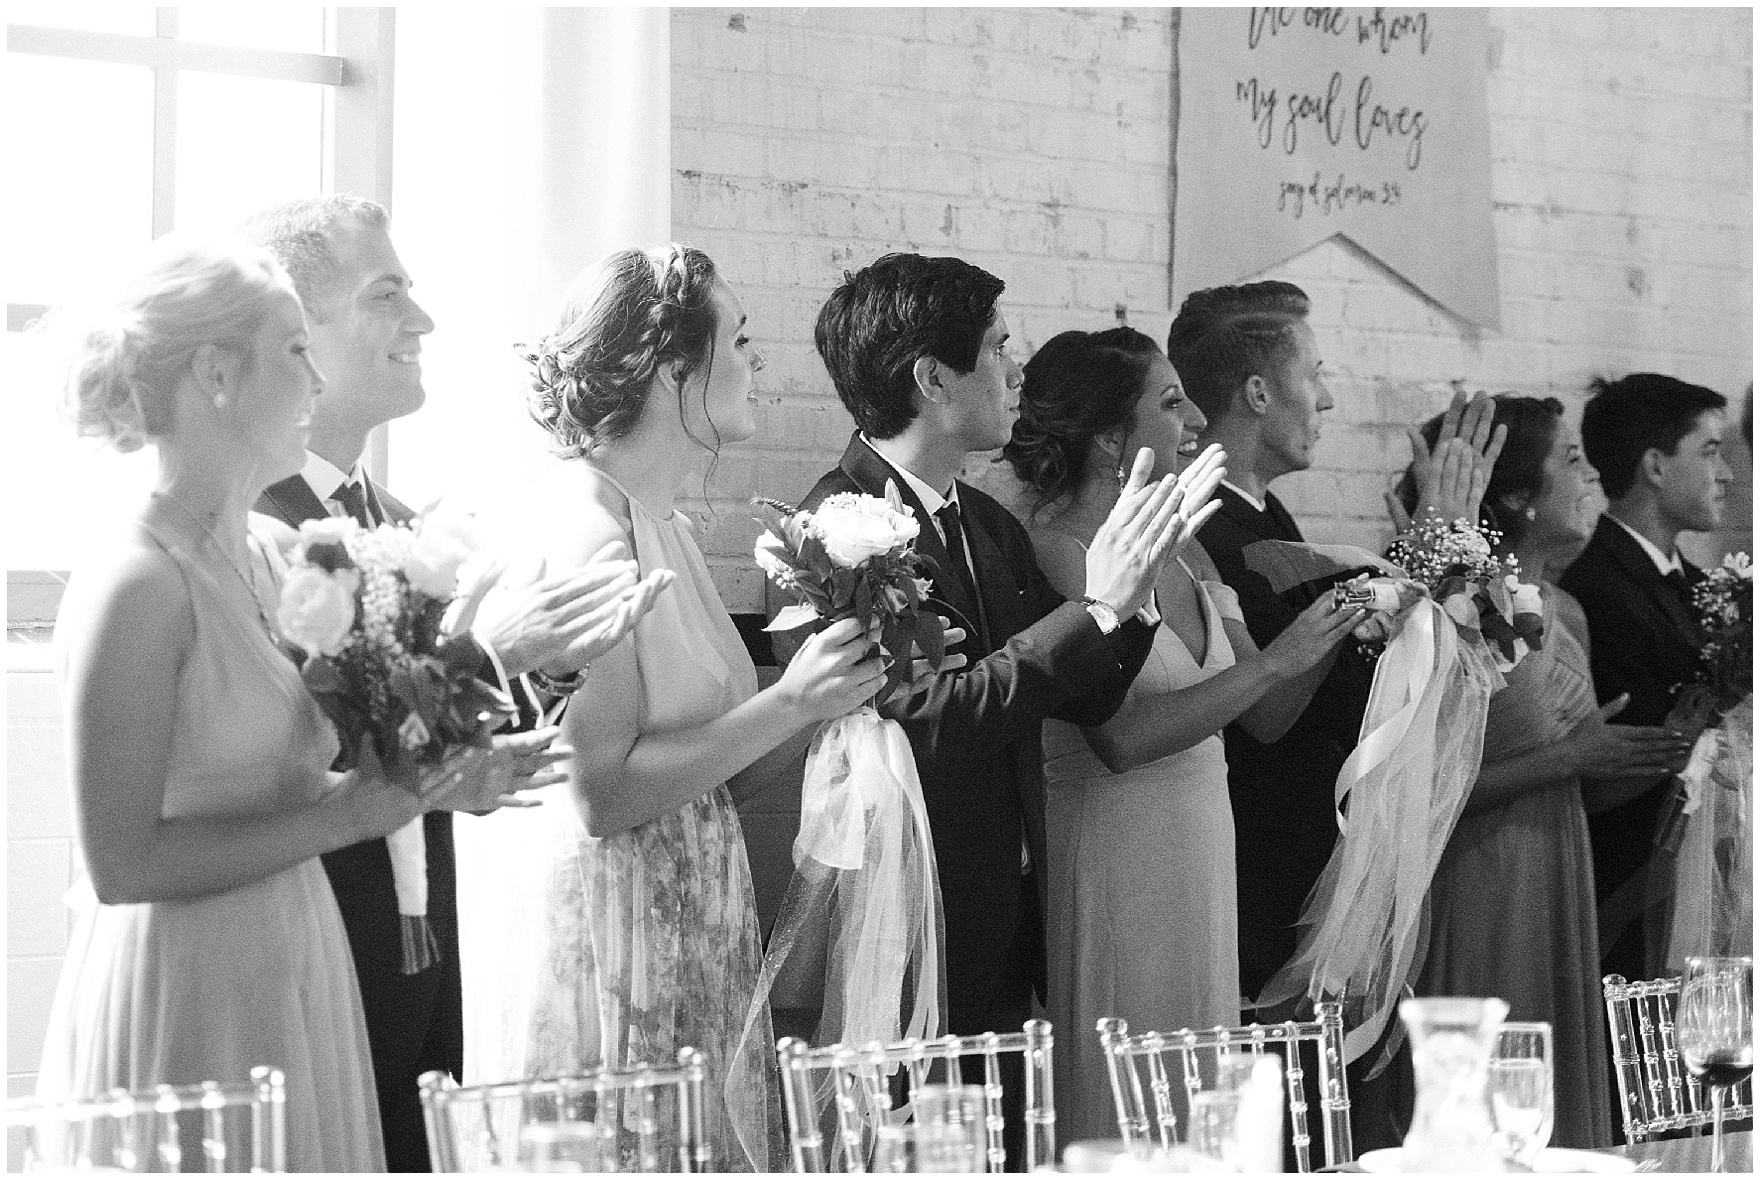 The bridal party cheers as the bride and groom enter their wedding reception at The Brick in South Bend, following a University of Notre Dame wedding.